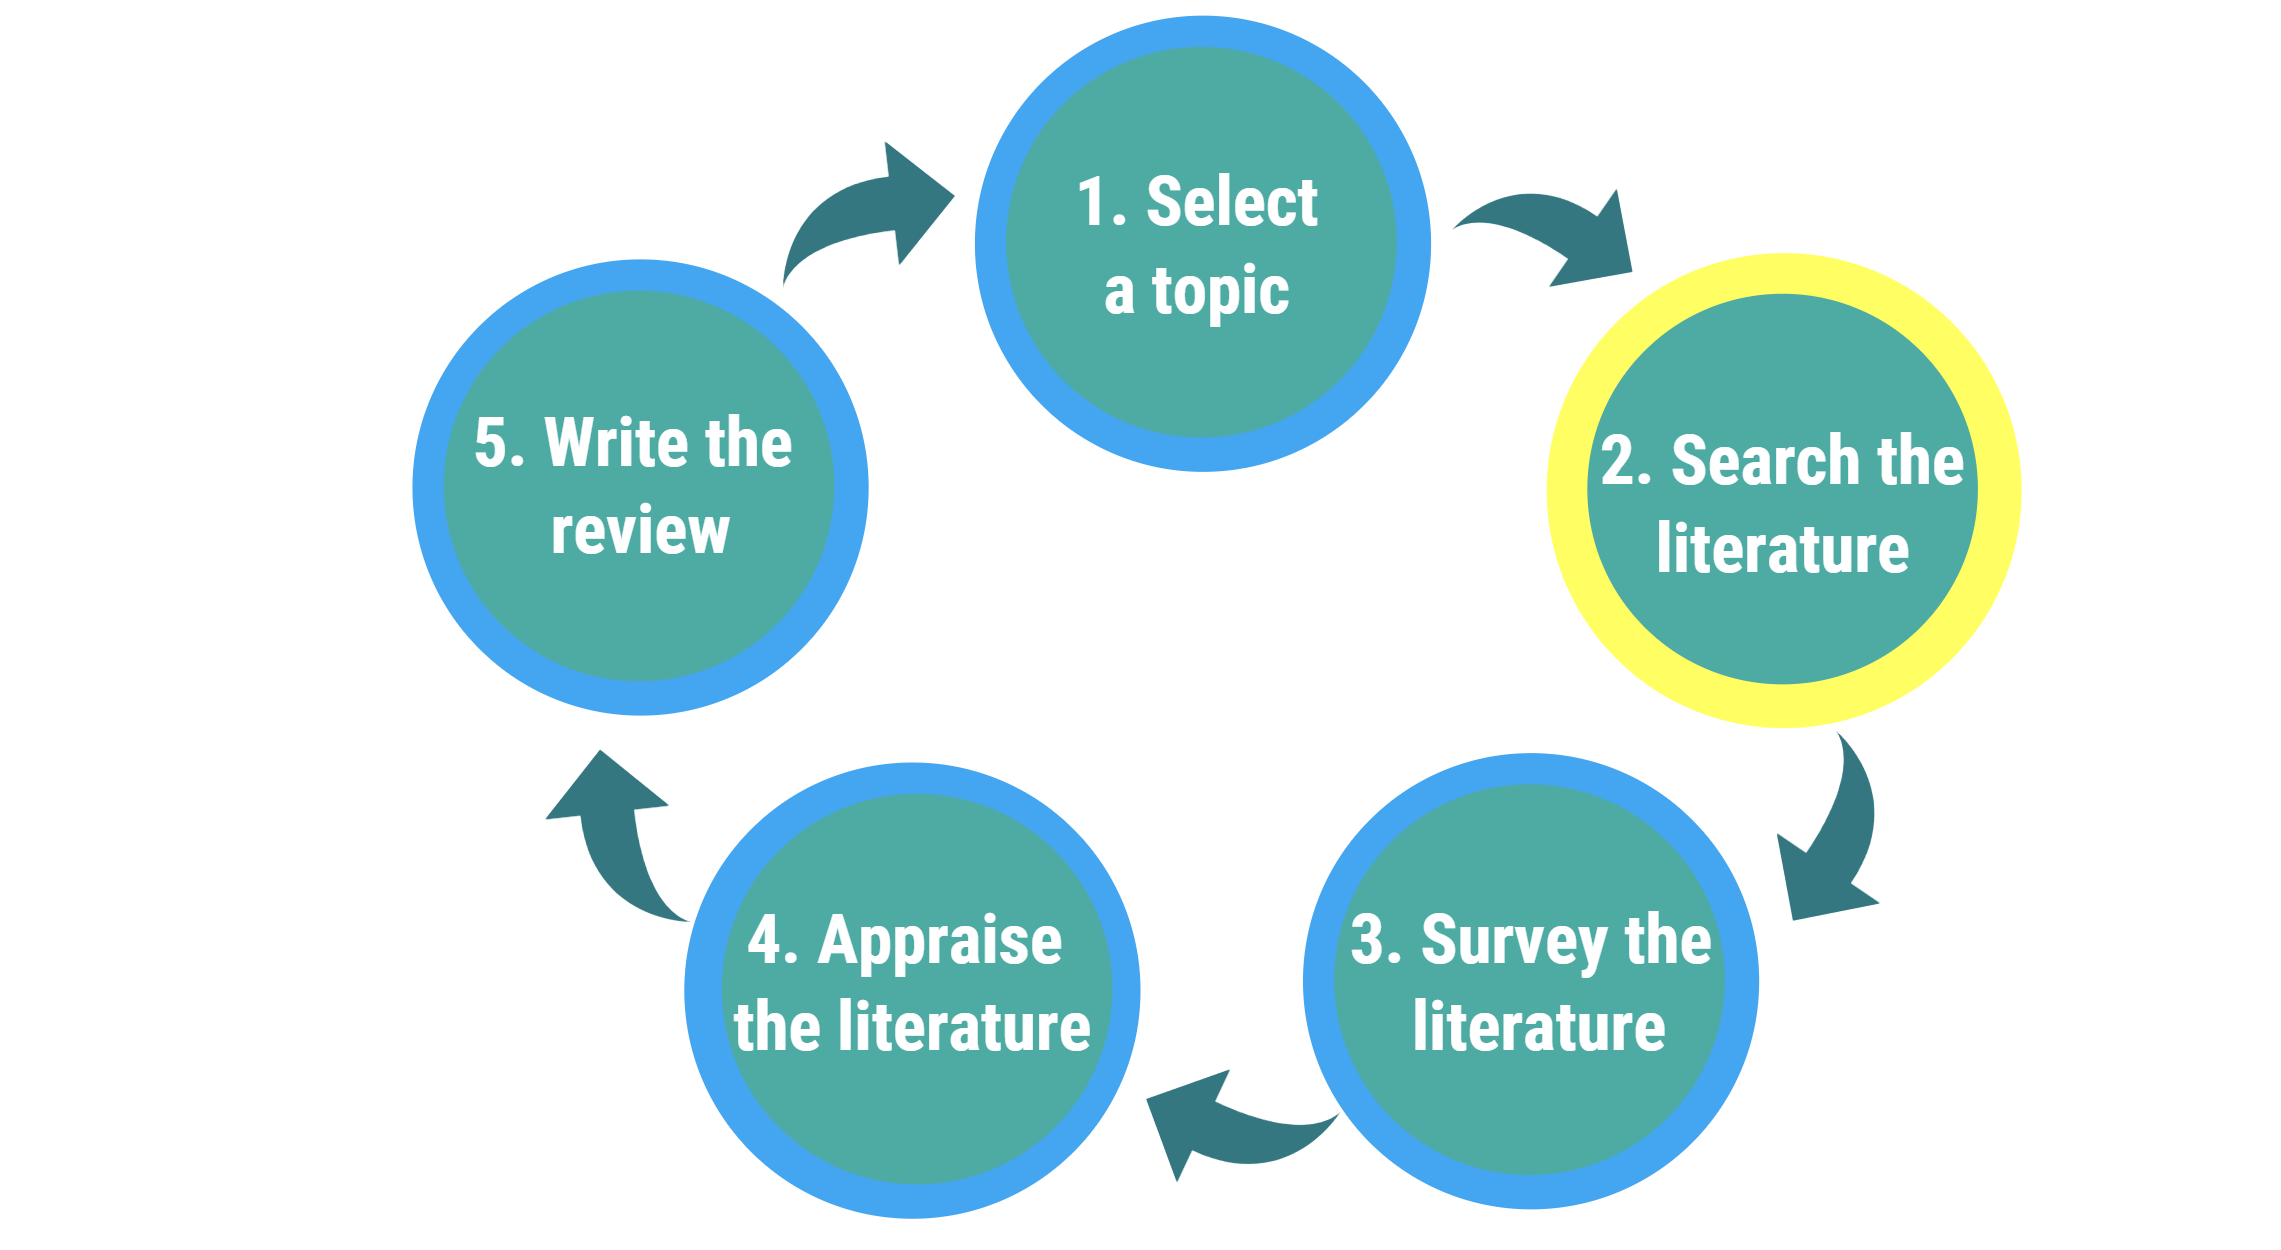 1. Select a topic; 2. Search for literature; 3. Survey the literature; 4. Appraise the literature; 5. Write the review